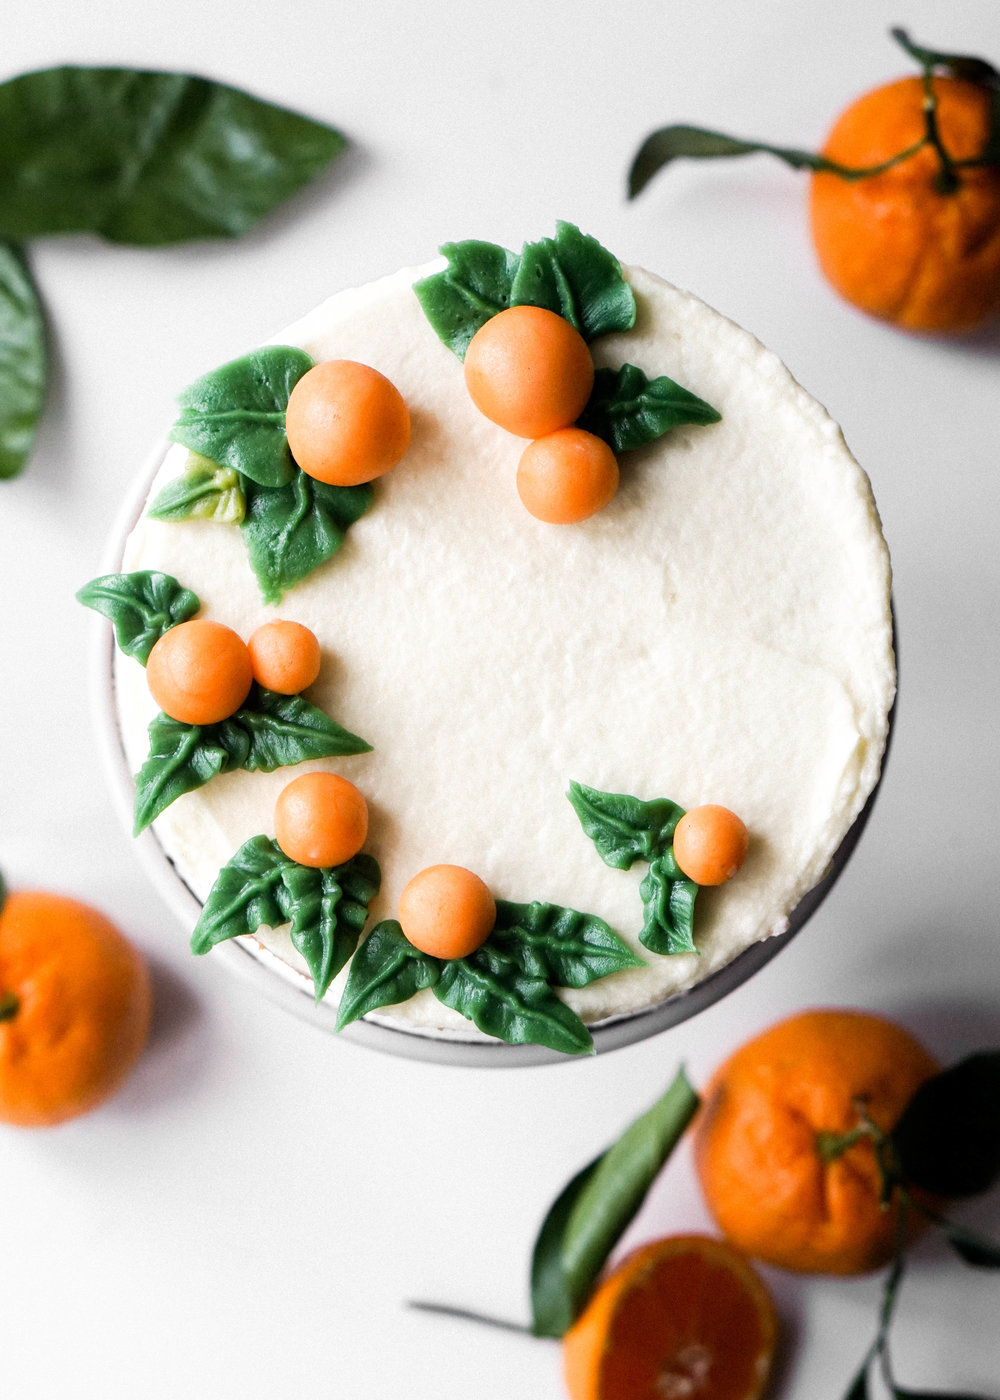 Mini Almond and Satsuma Orange Cake // https://eatchofood.com/blog/2019/1/12/mini-almond-and-satsuma-orange-cake // Gluten Free